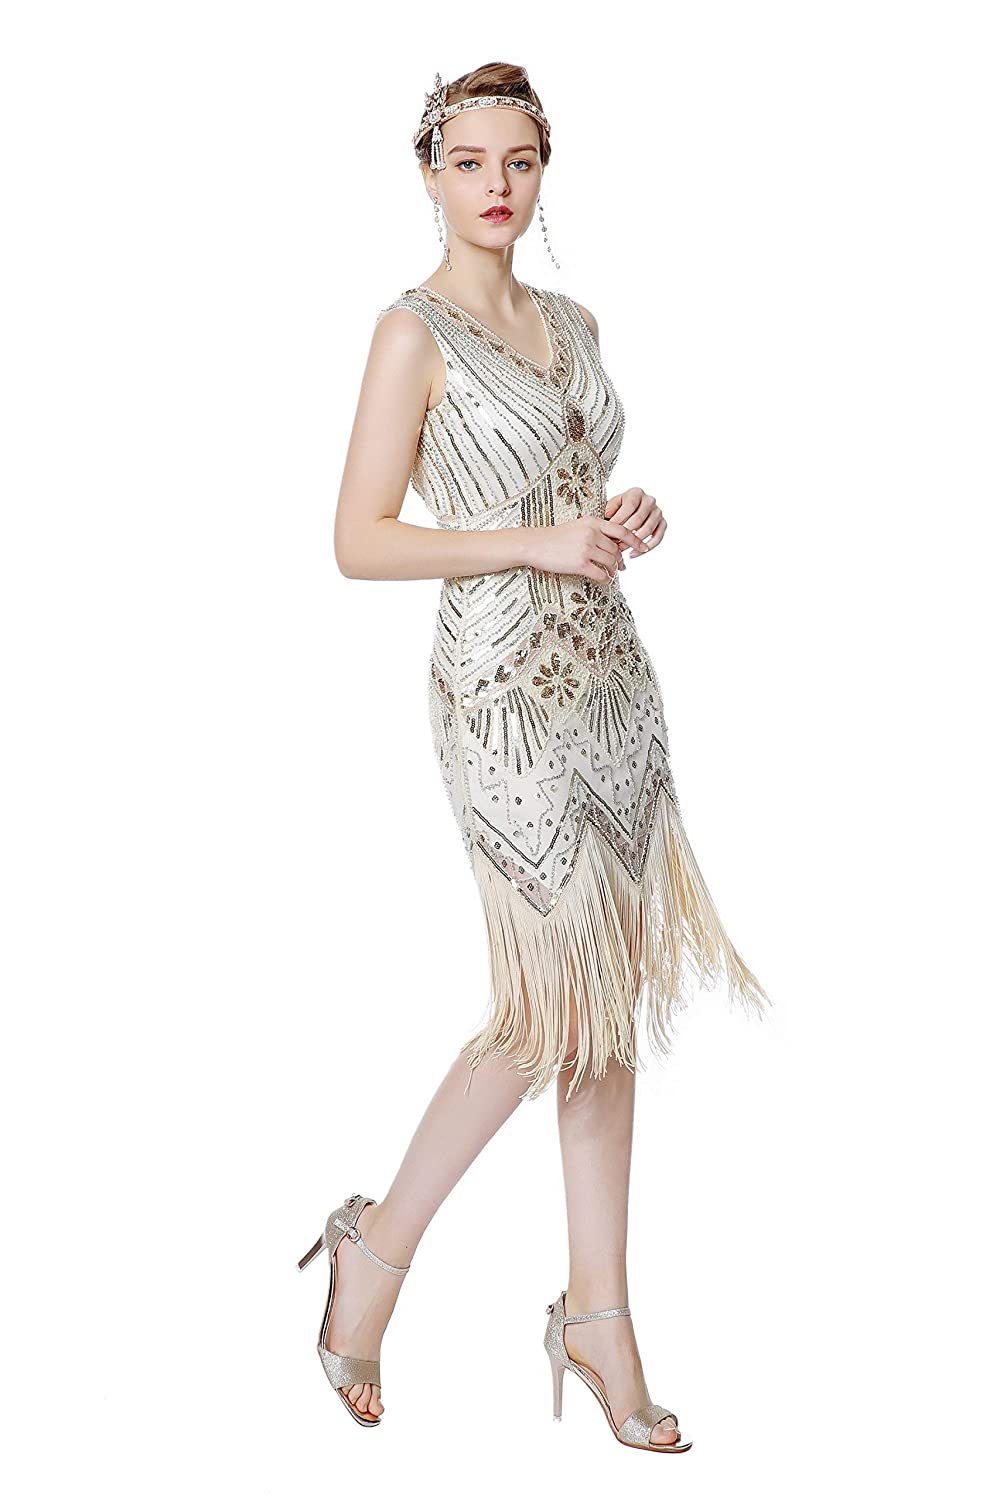 1920s Costumes: Flapper, Great Gatsby, Gangster Girl Metme Womens Flapper Dress 1920s V Neck Beaded Fringed Gatsby Theme Raoring 20s Dress for Prom $35.99 AT vintagedancer.com